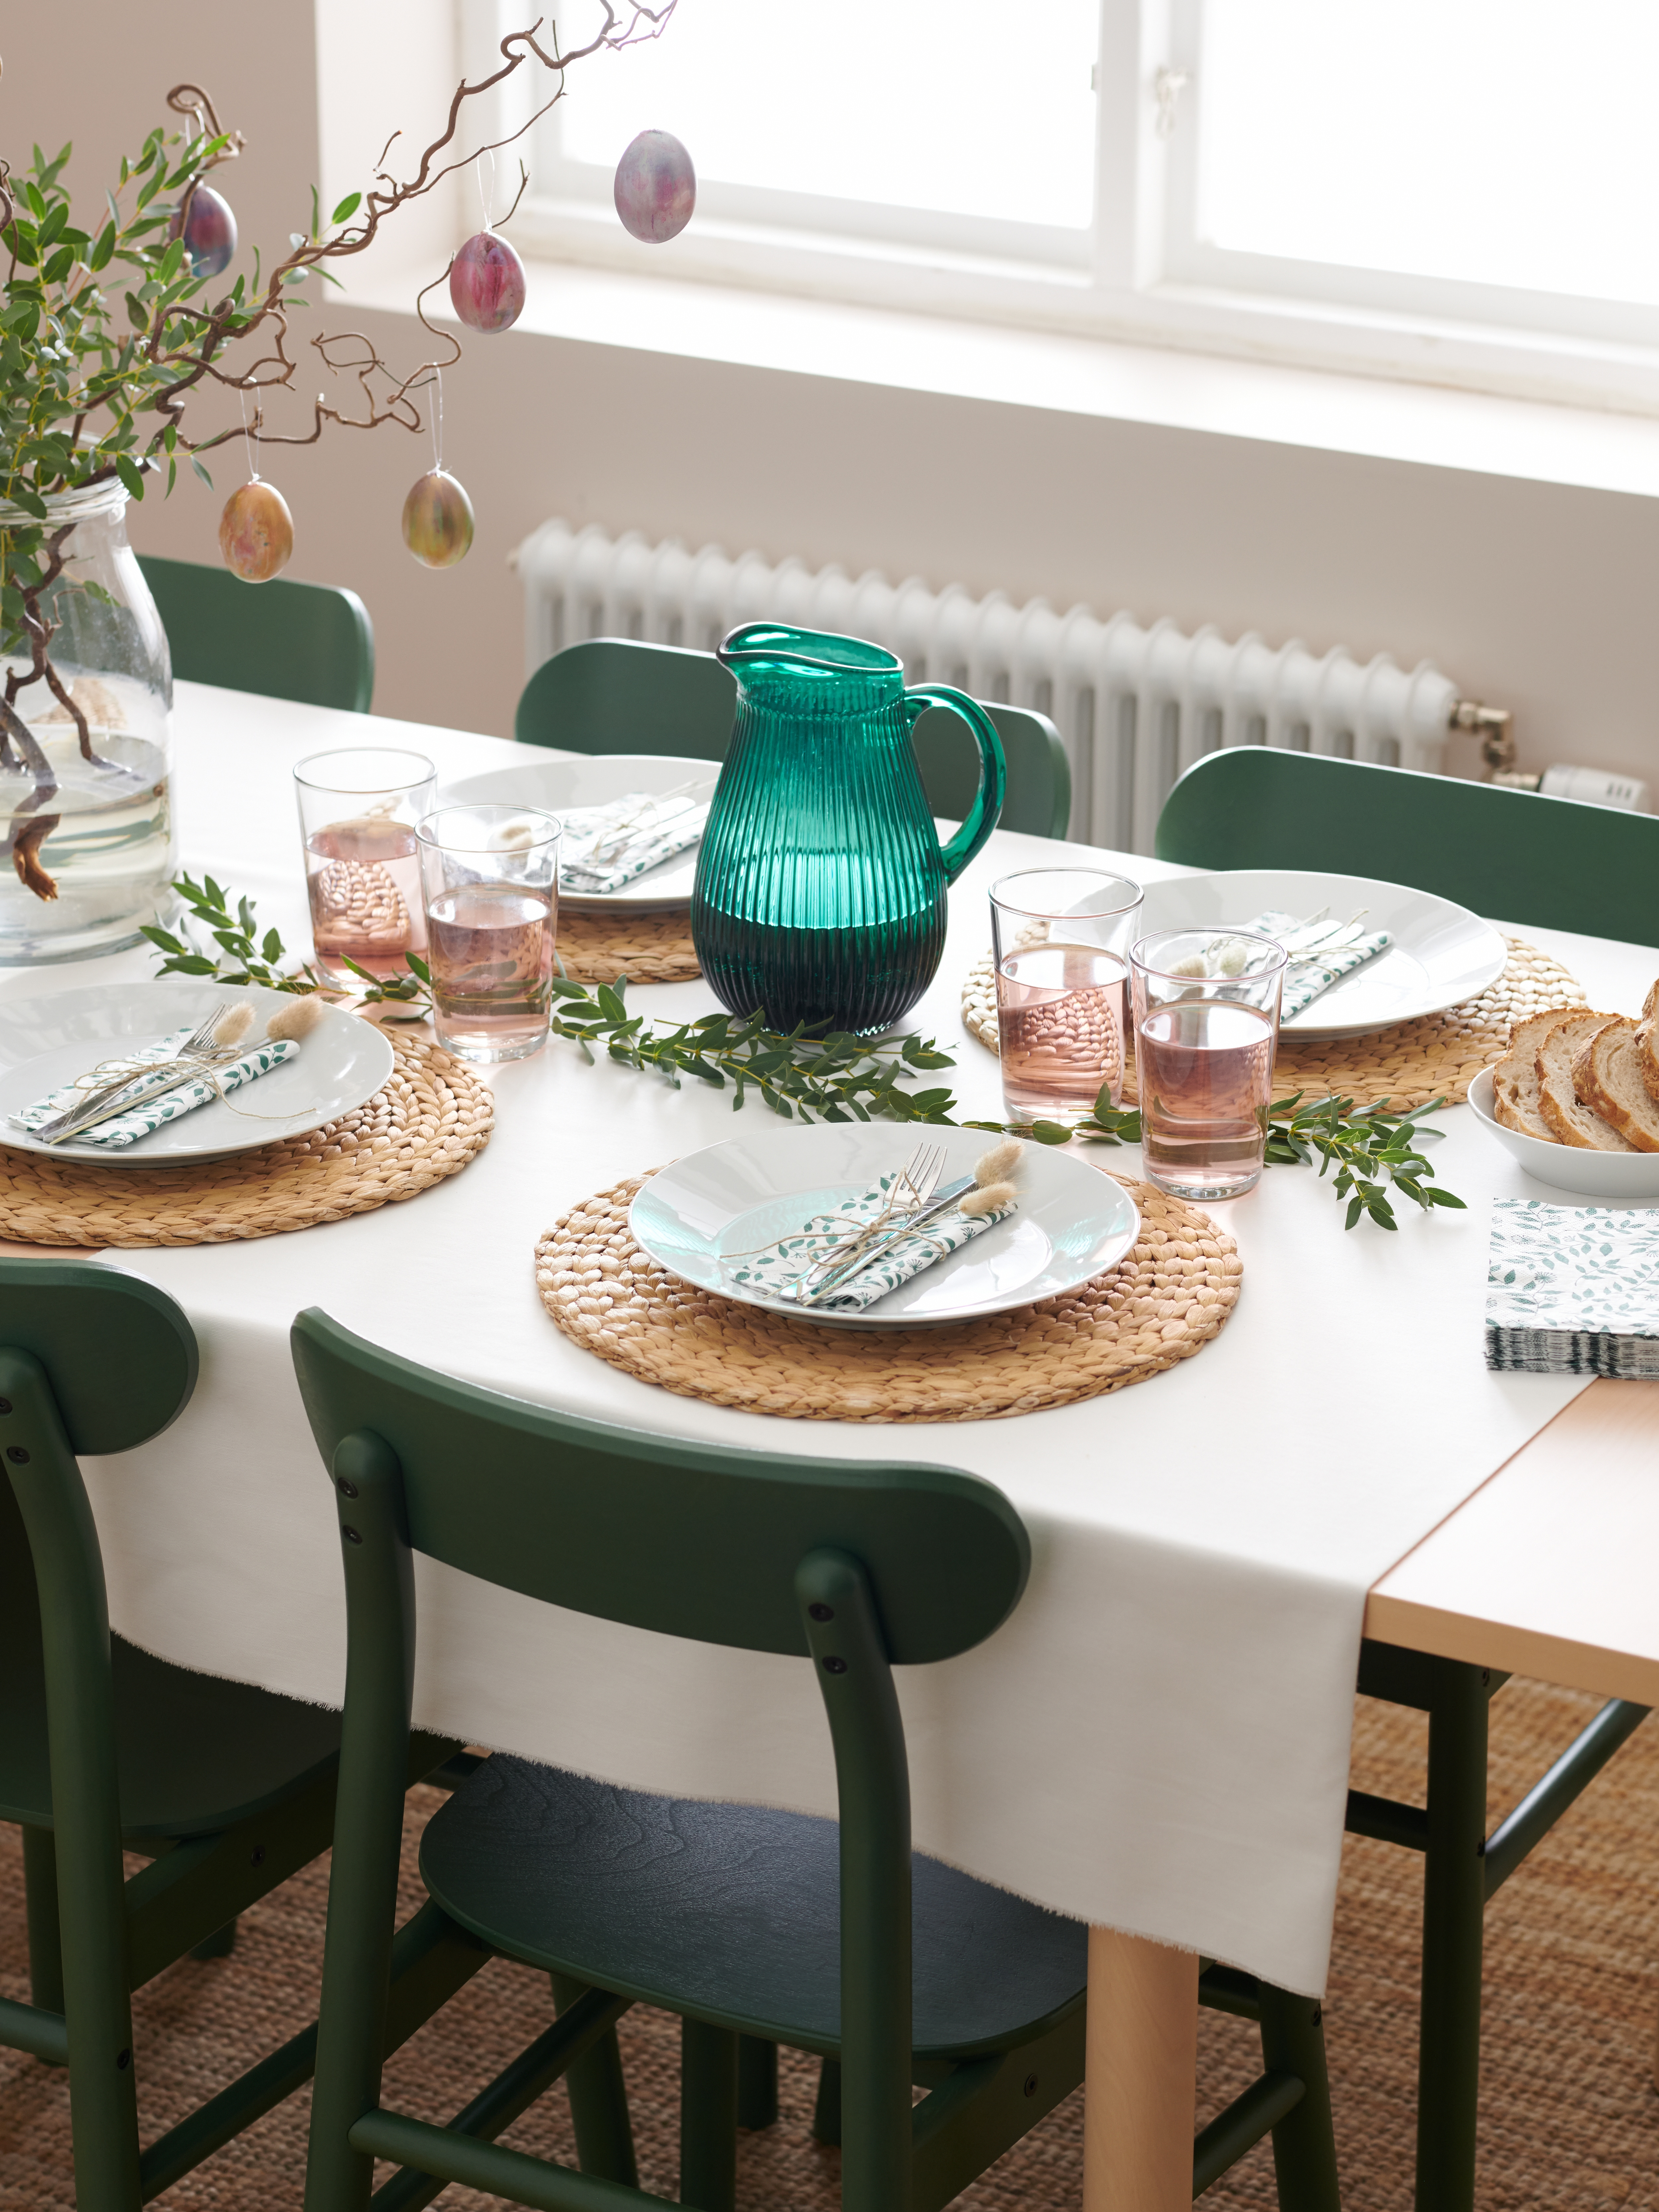 A table decorated and set for Easter with IKEA 365+ tableware, ROSENHÄTTA napkins and coloured eggs hanging from plant twigs.